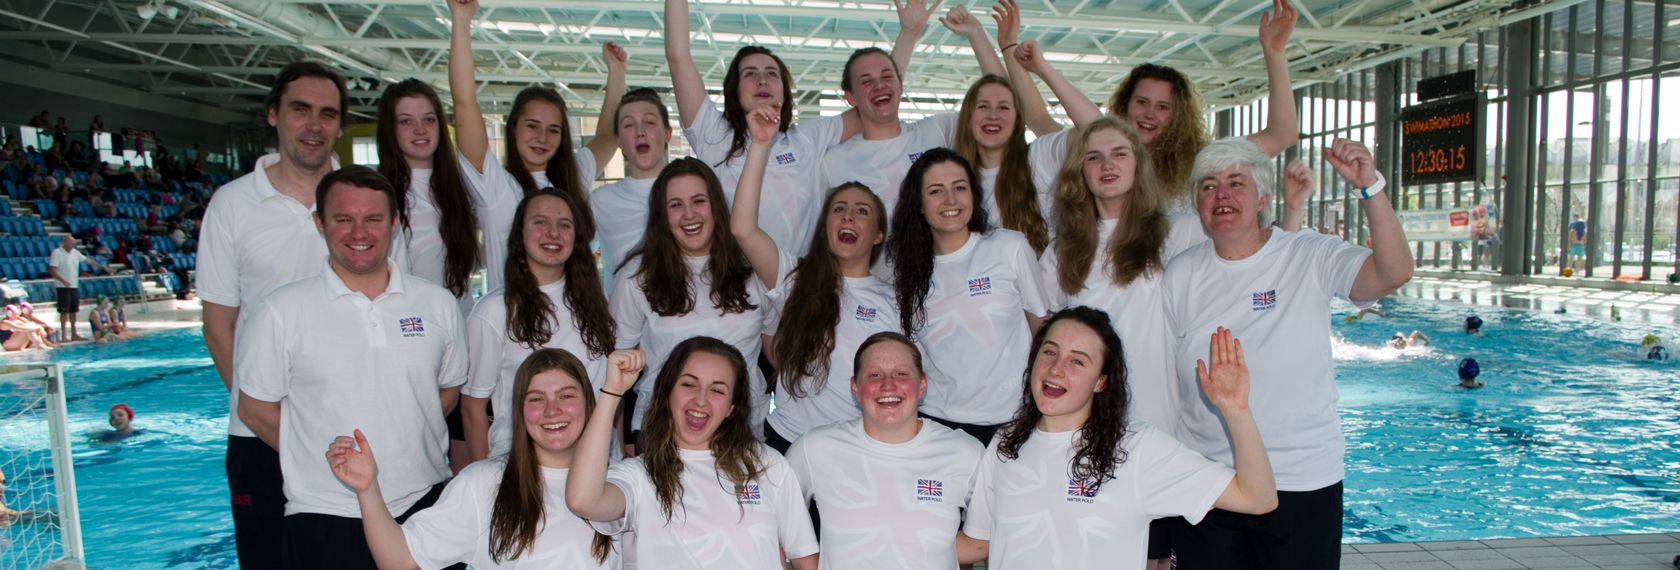 european_games_gb_water_polo_girls_squad.jpg